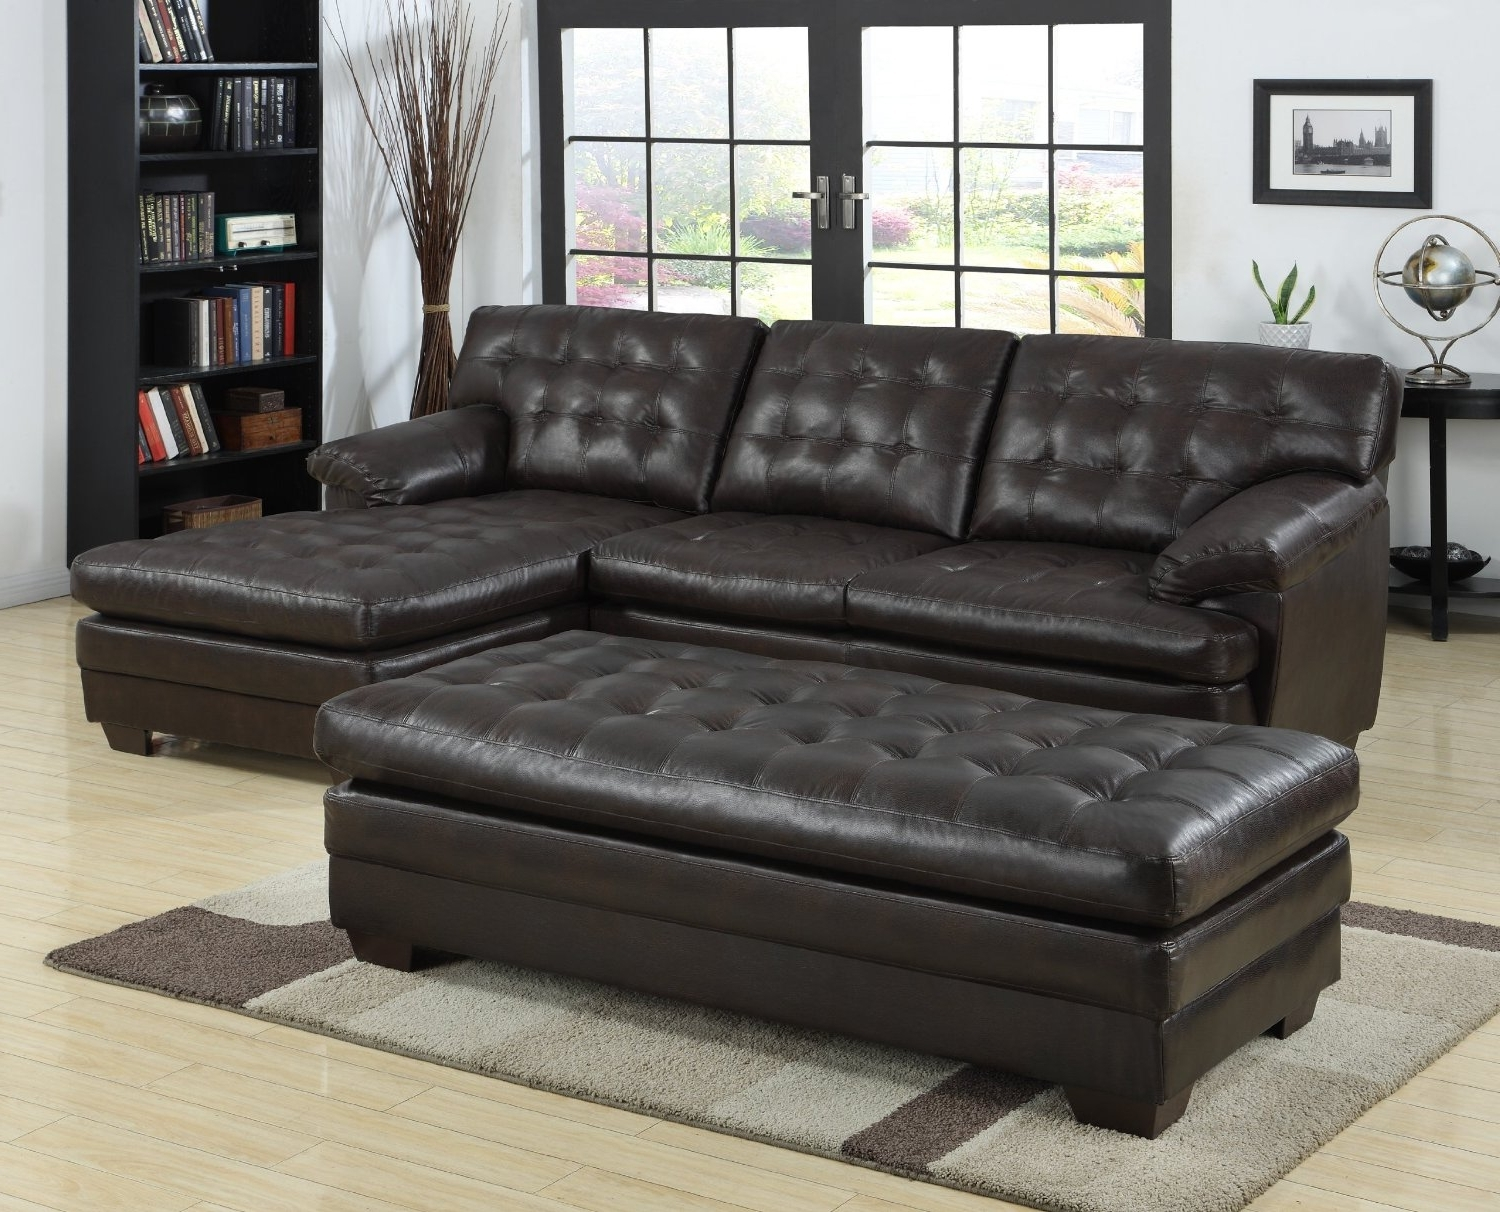 Favorite Black Tufted Leather Sectional Sofa With Chaise And Bench Seat Within Tufted Sofas With Chaise (View 5 of 15)